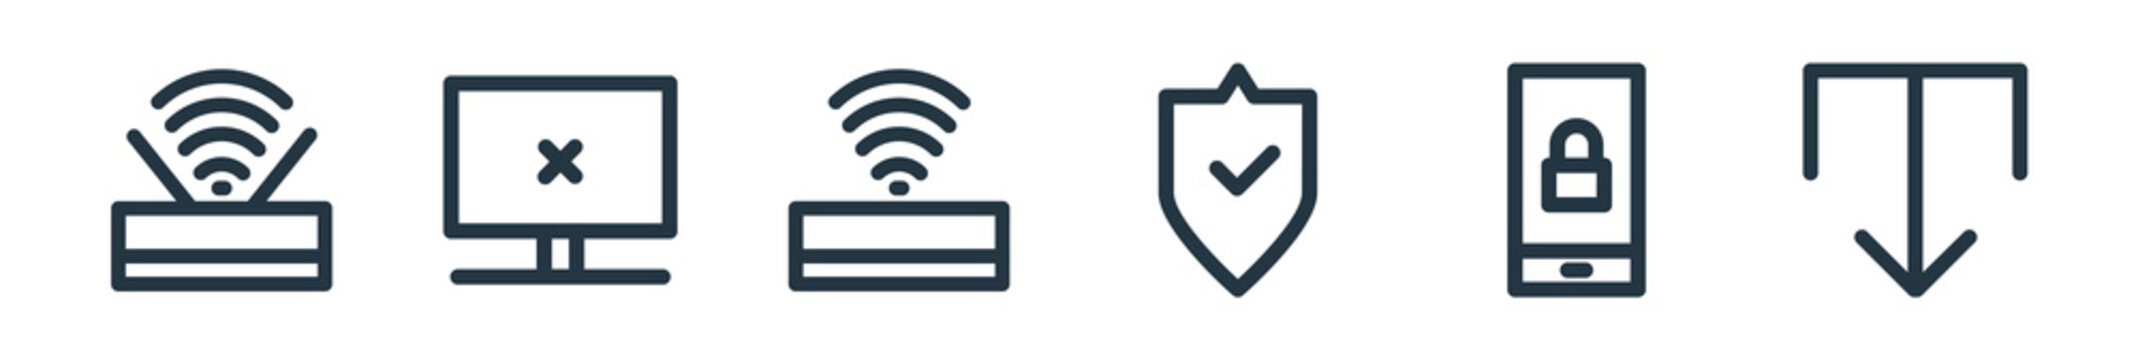 outline set of computer hardware line icons. linear vector icons such as wifi, error, wifi, protection, lock, download. vector illustration.